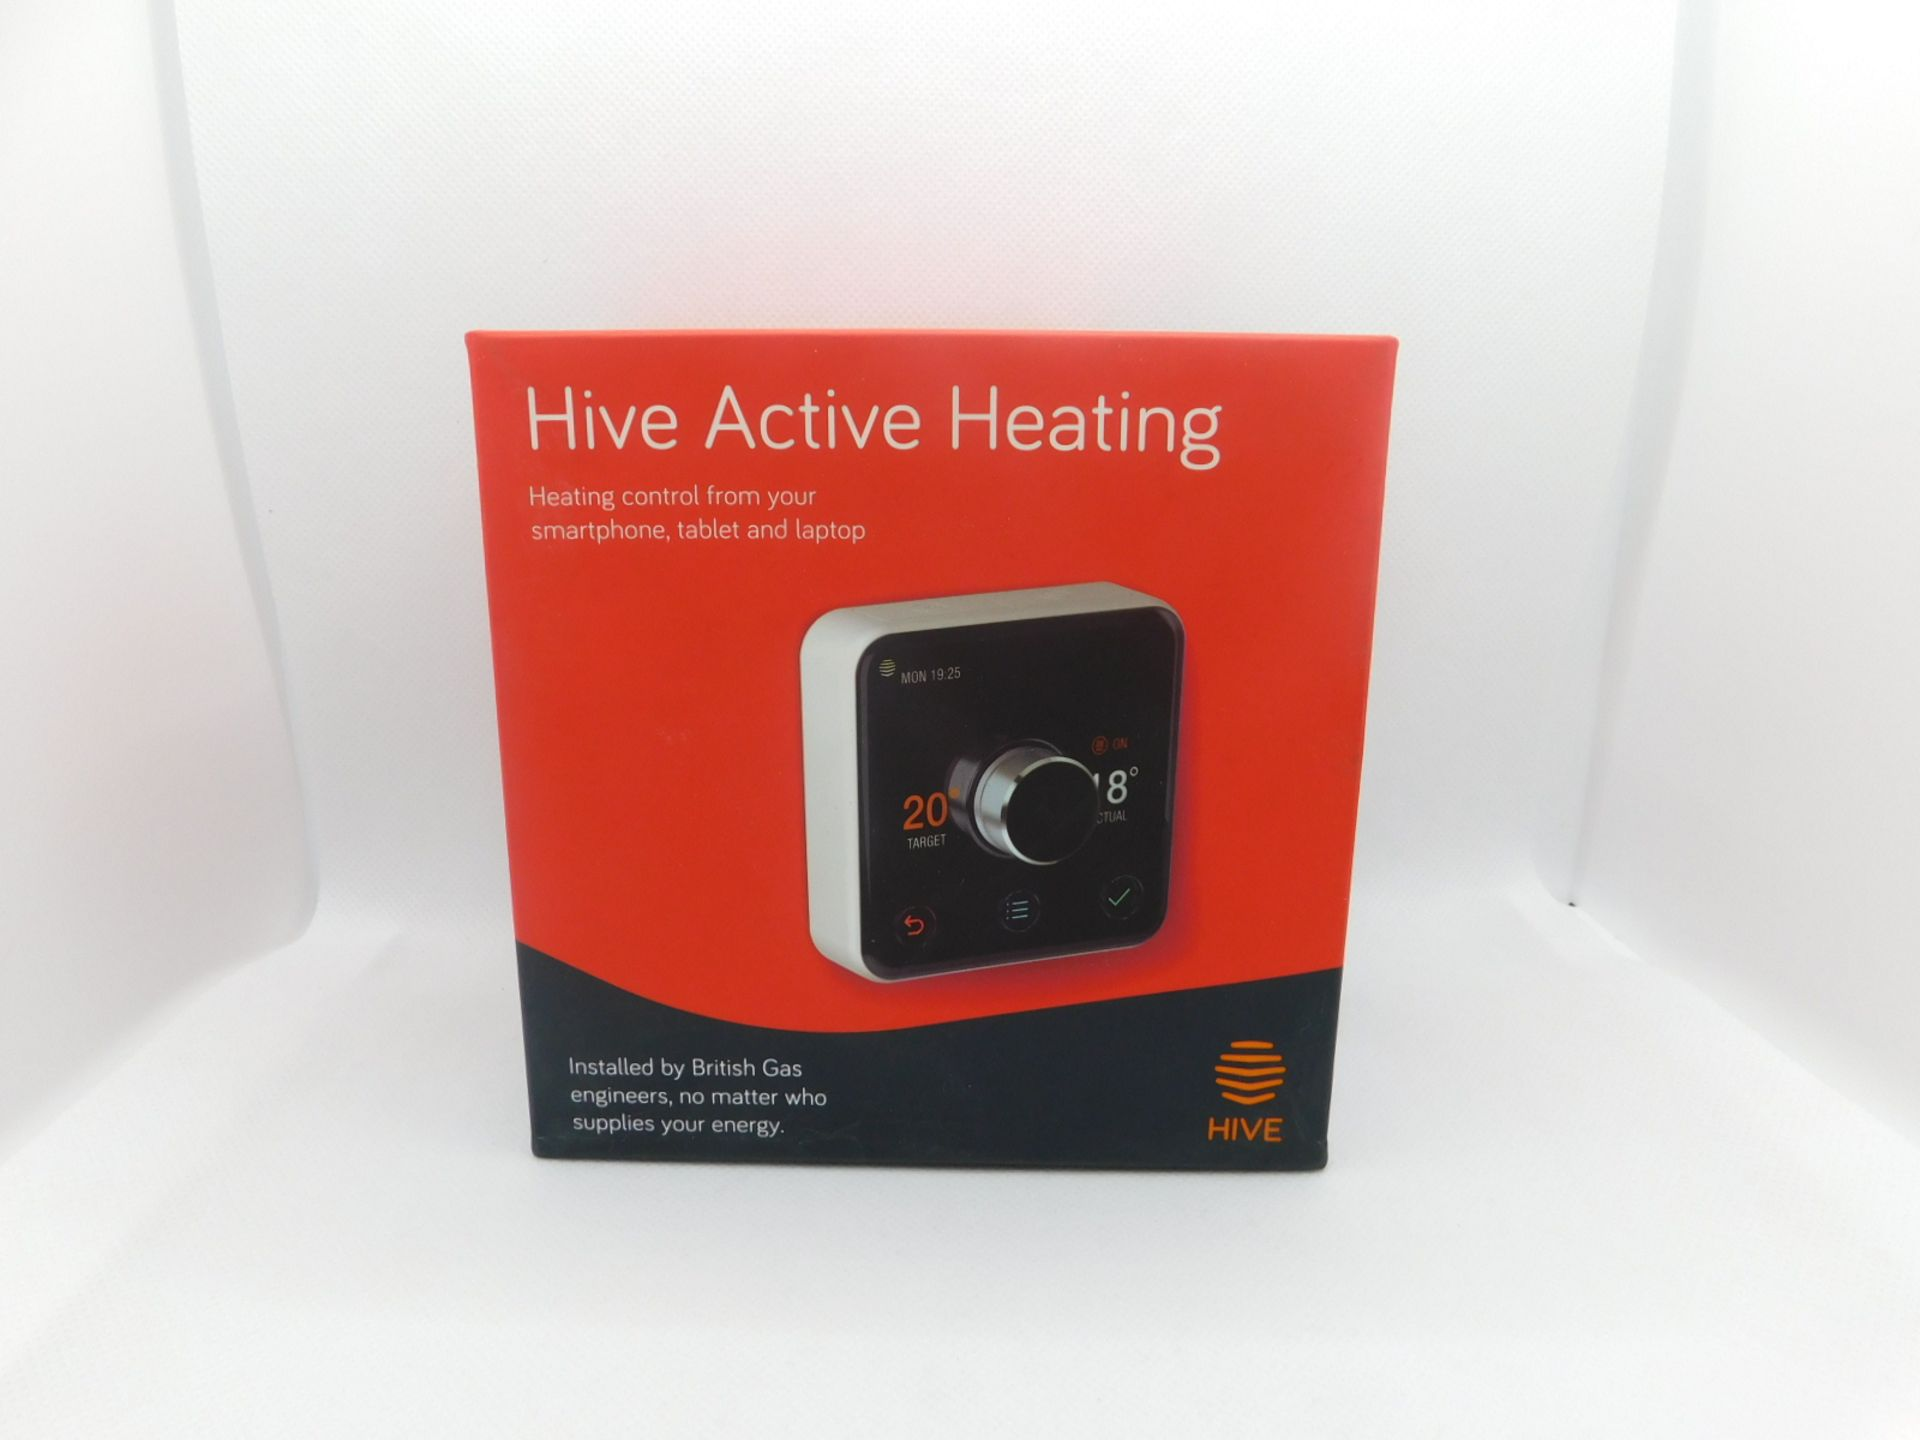 1 BOXED UK7003854 HIVE ACTIVE HEATING THERMOSTAT RRP £ 299